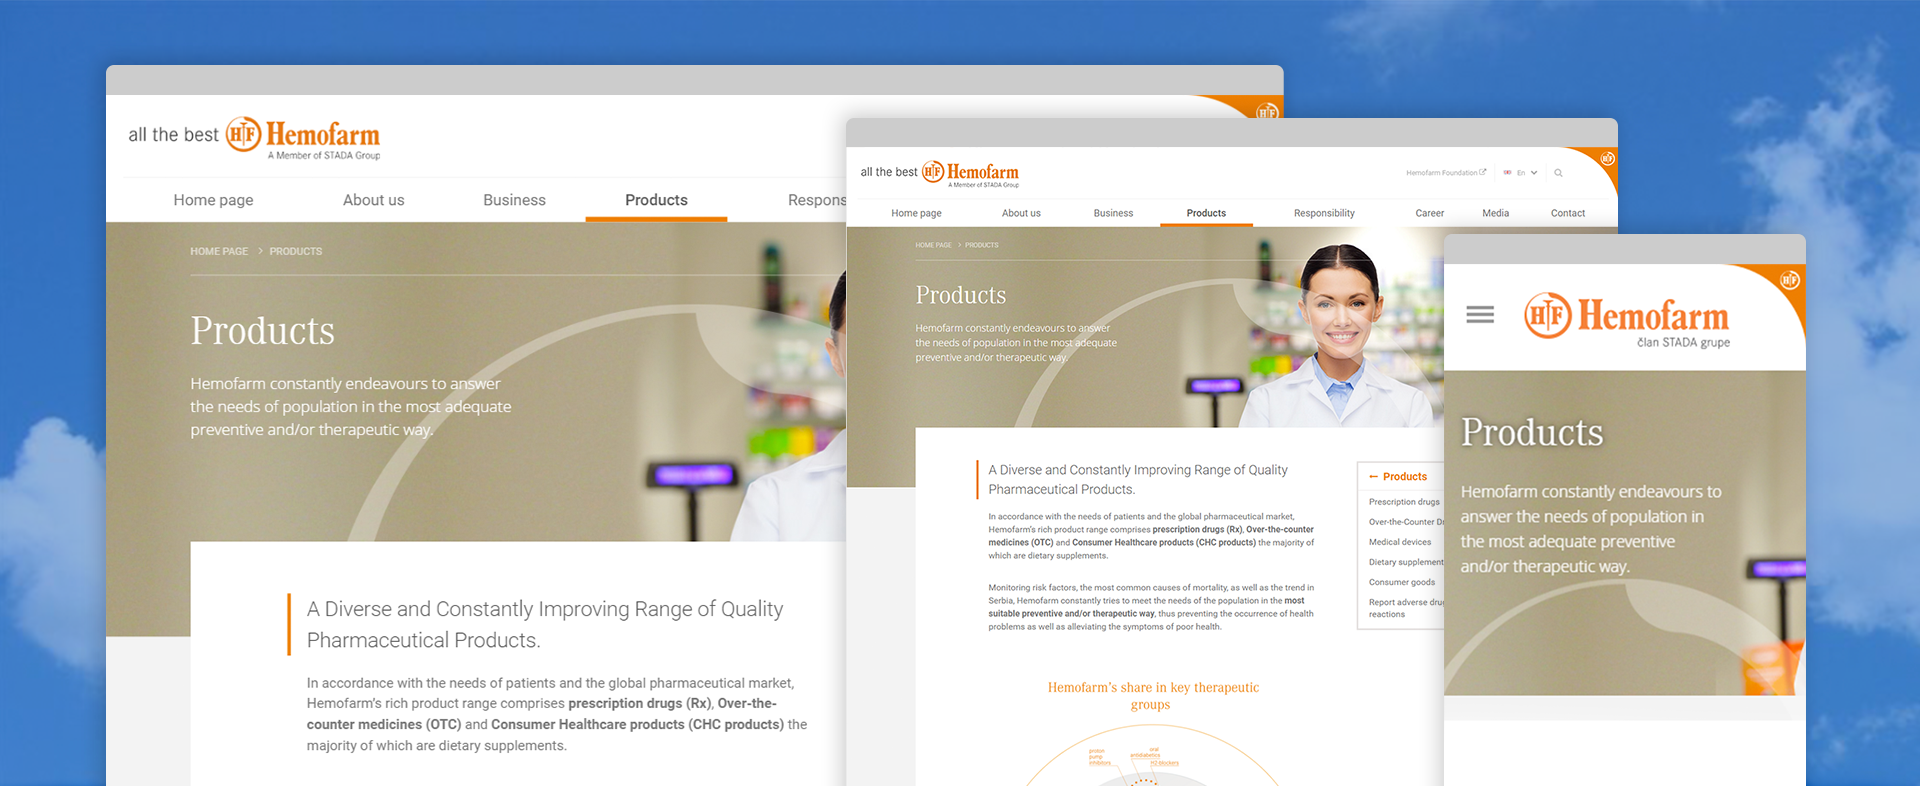 Hemofarm portal preview